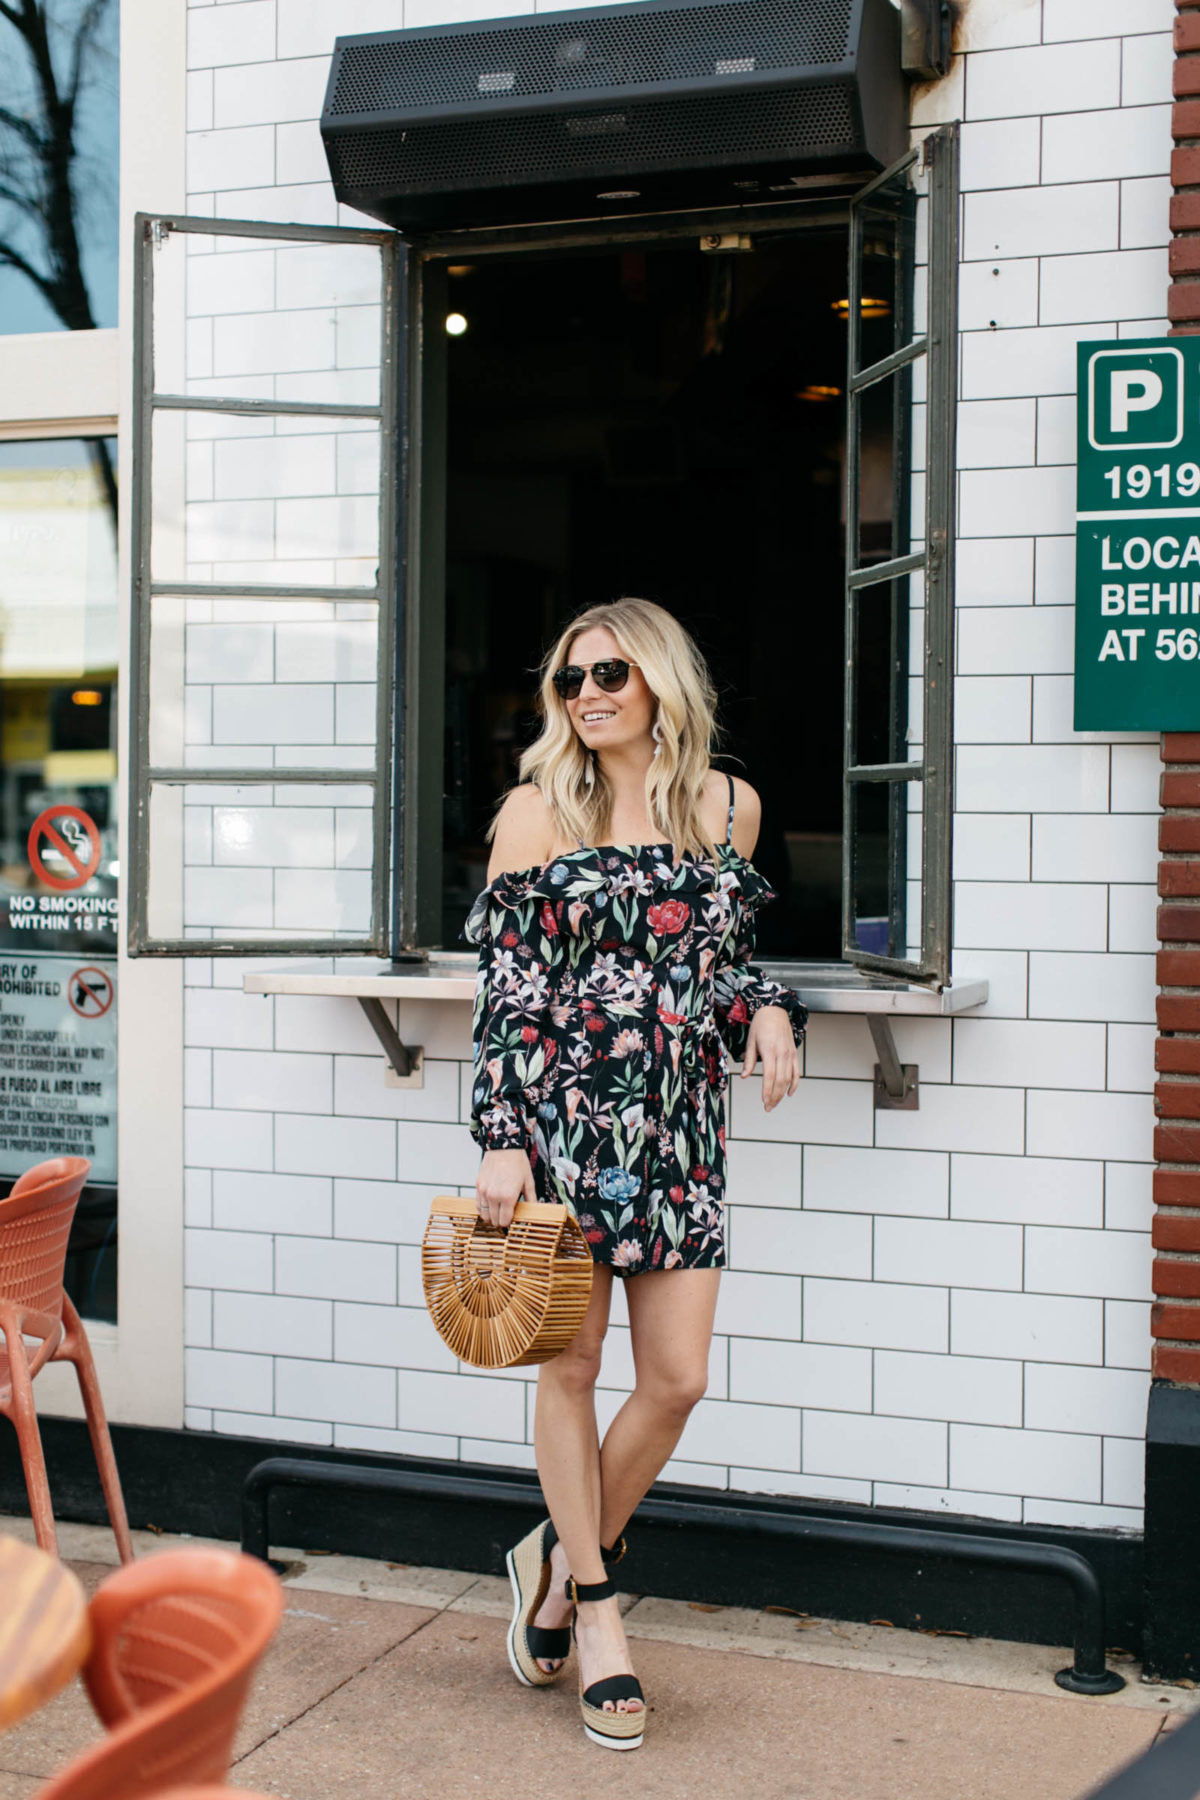 One Small Blonde is featuring a floral dress and a weave bag